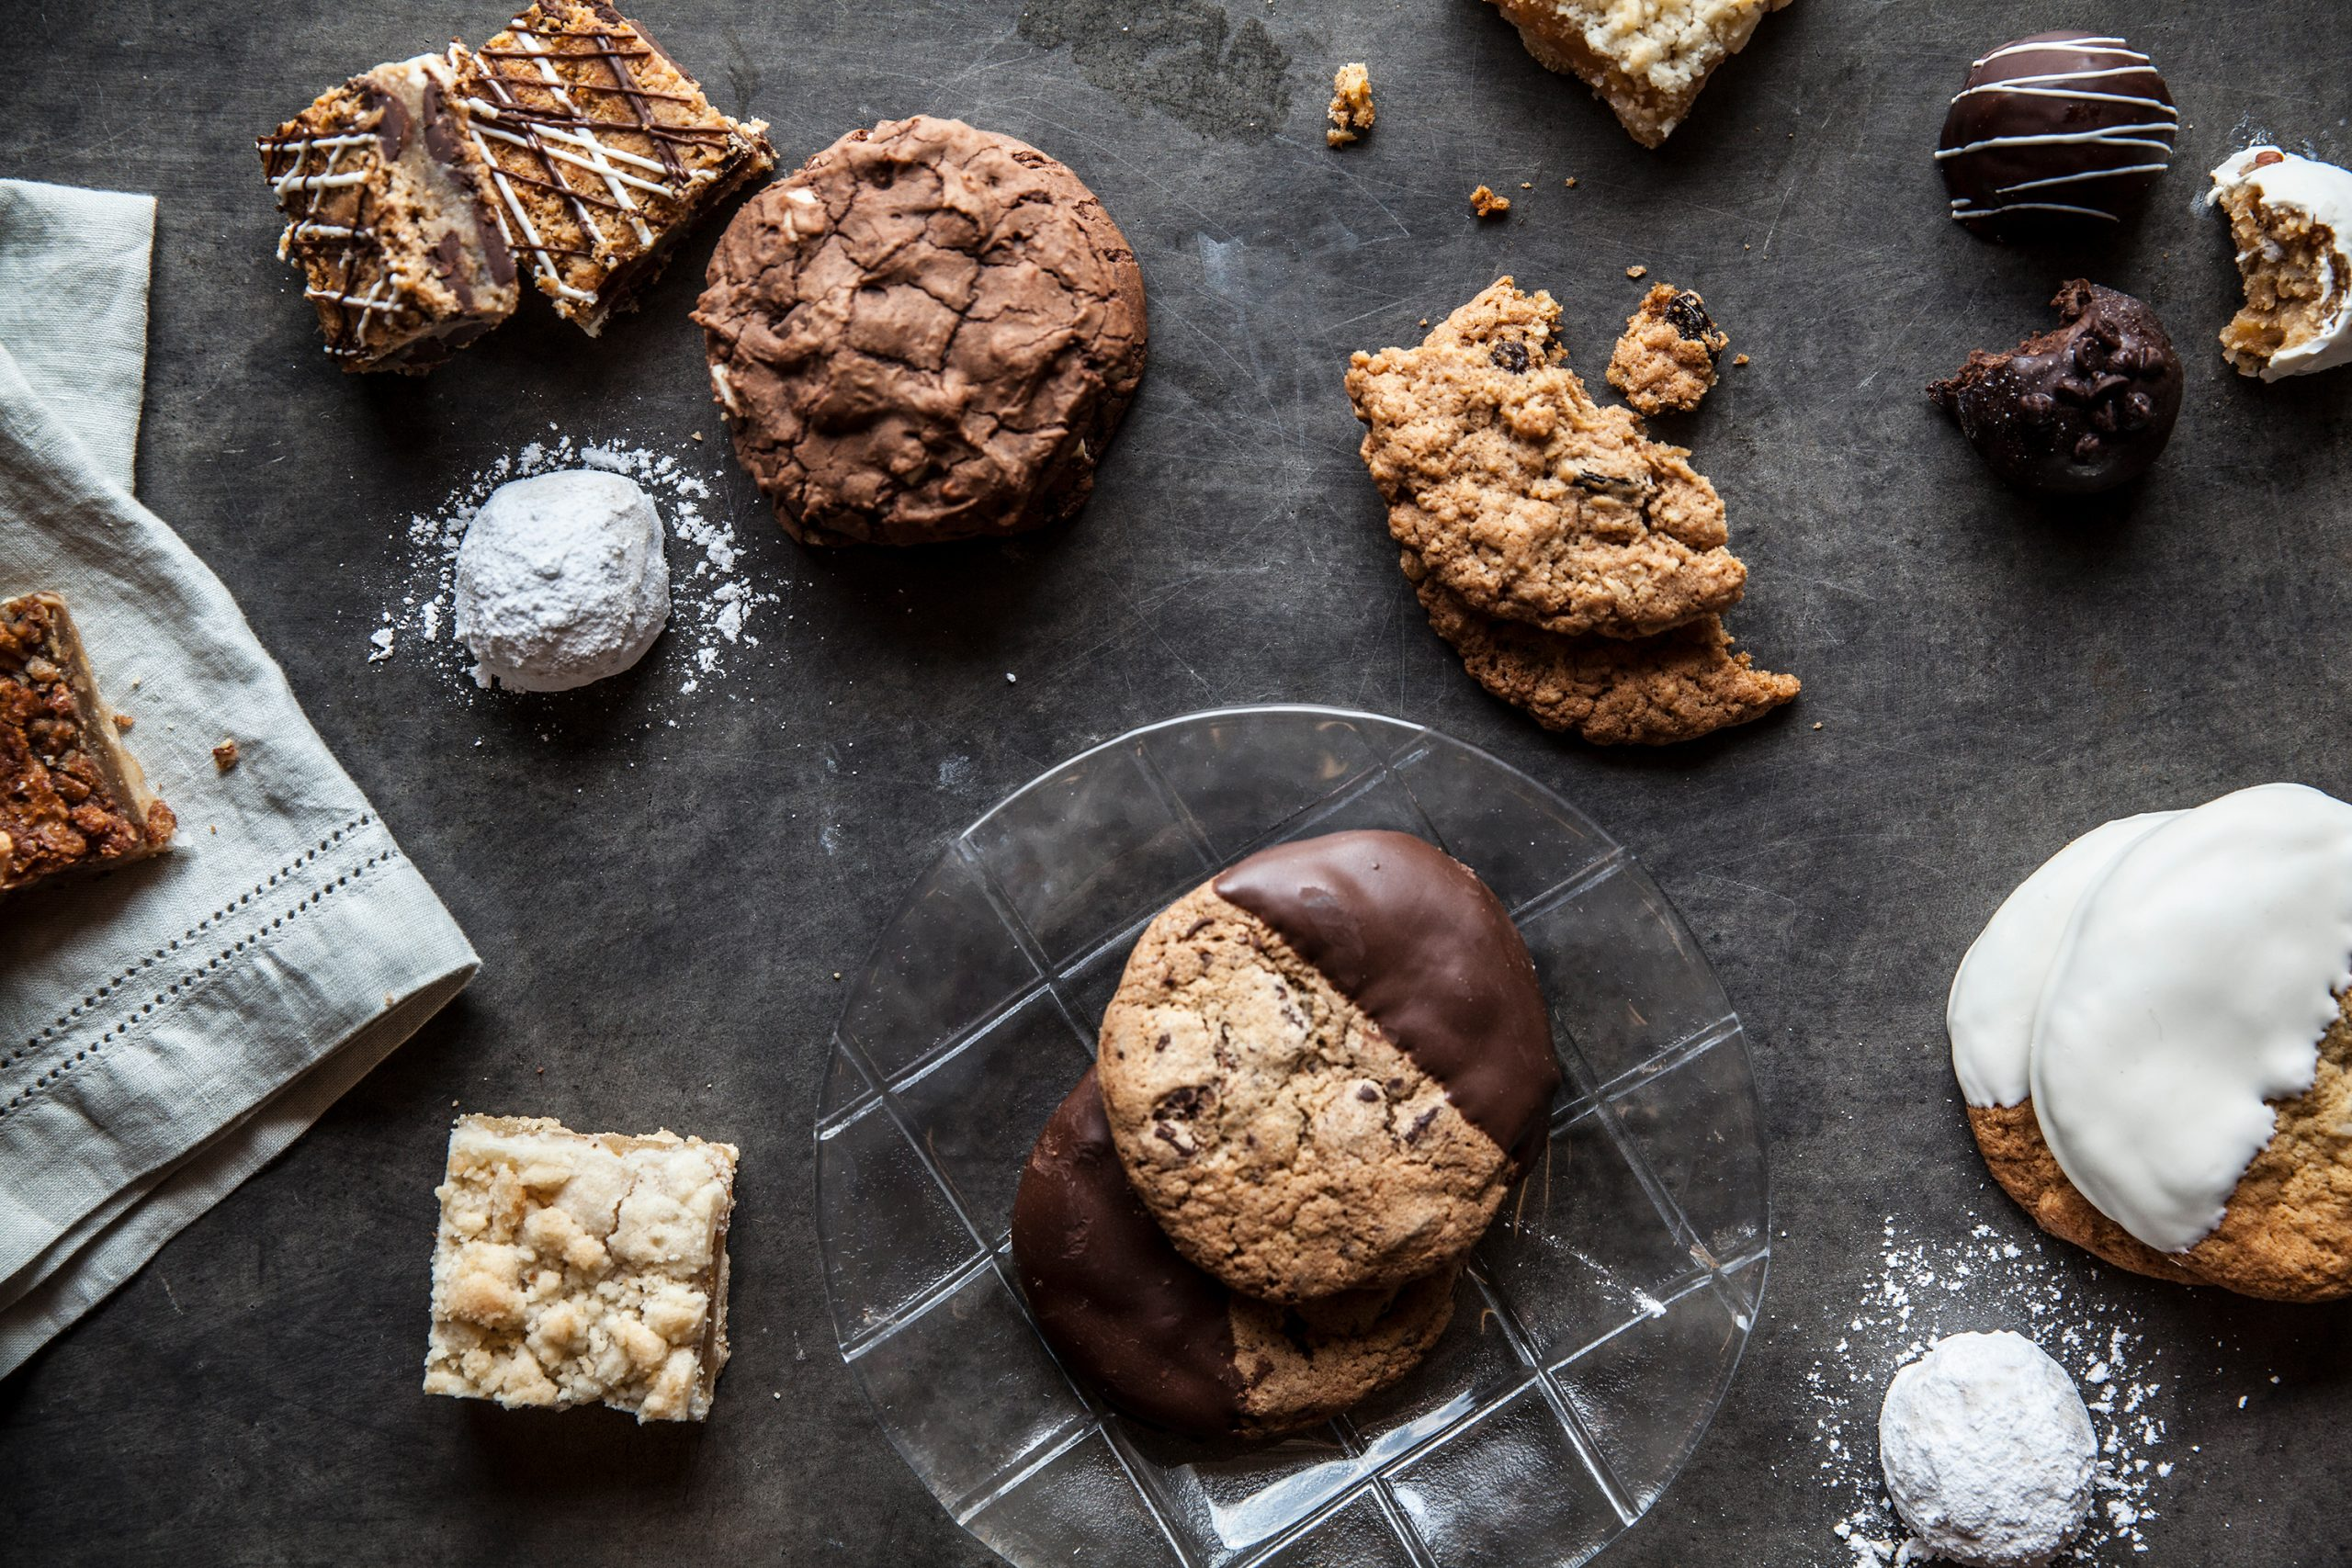 Culinary Photography - Julie Soefer Photography